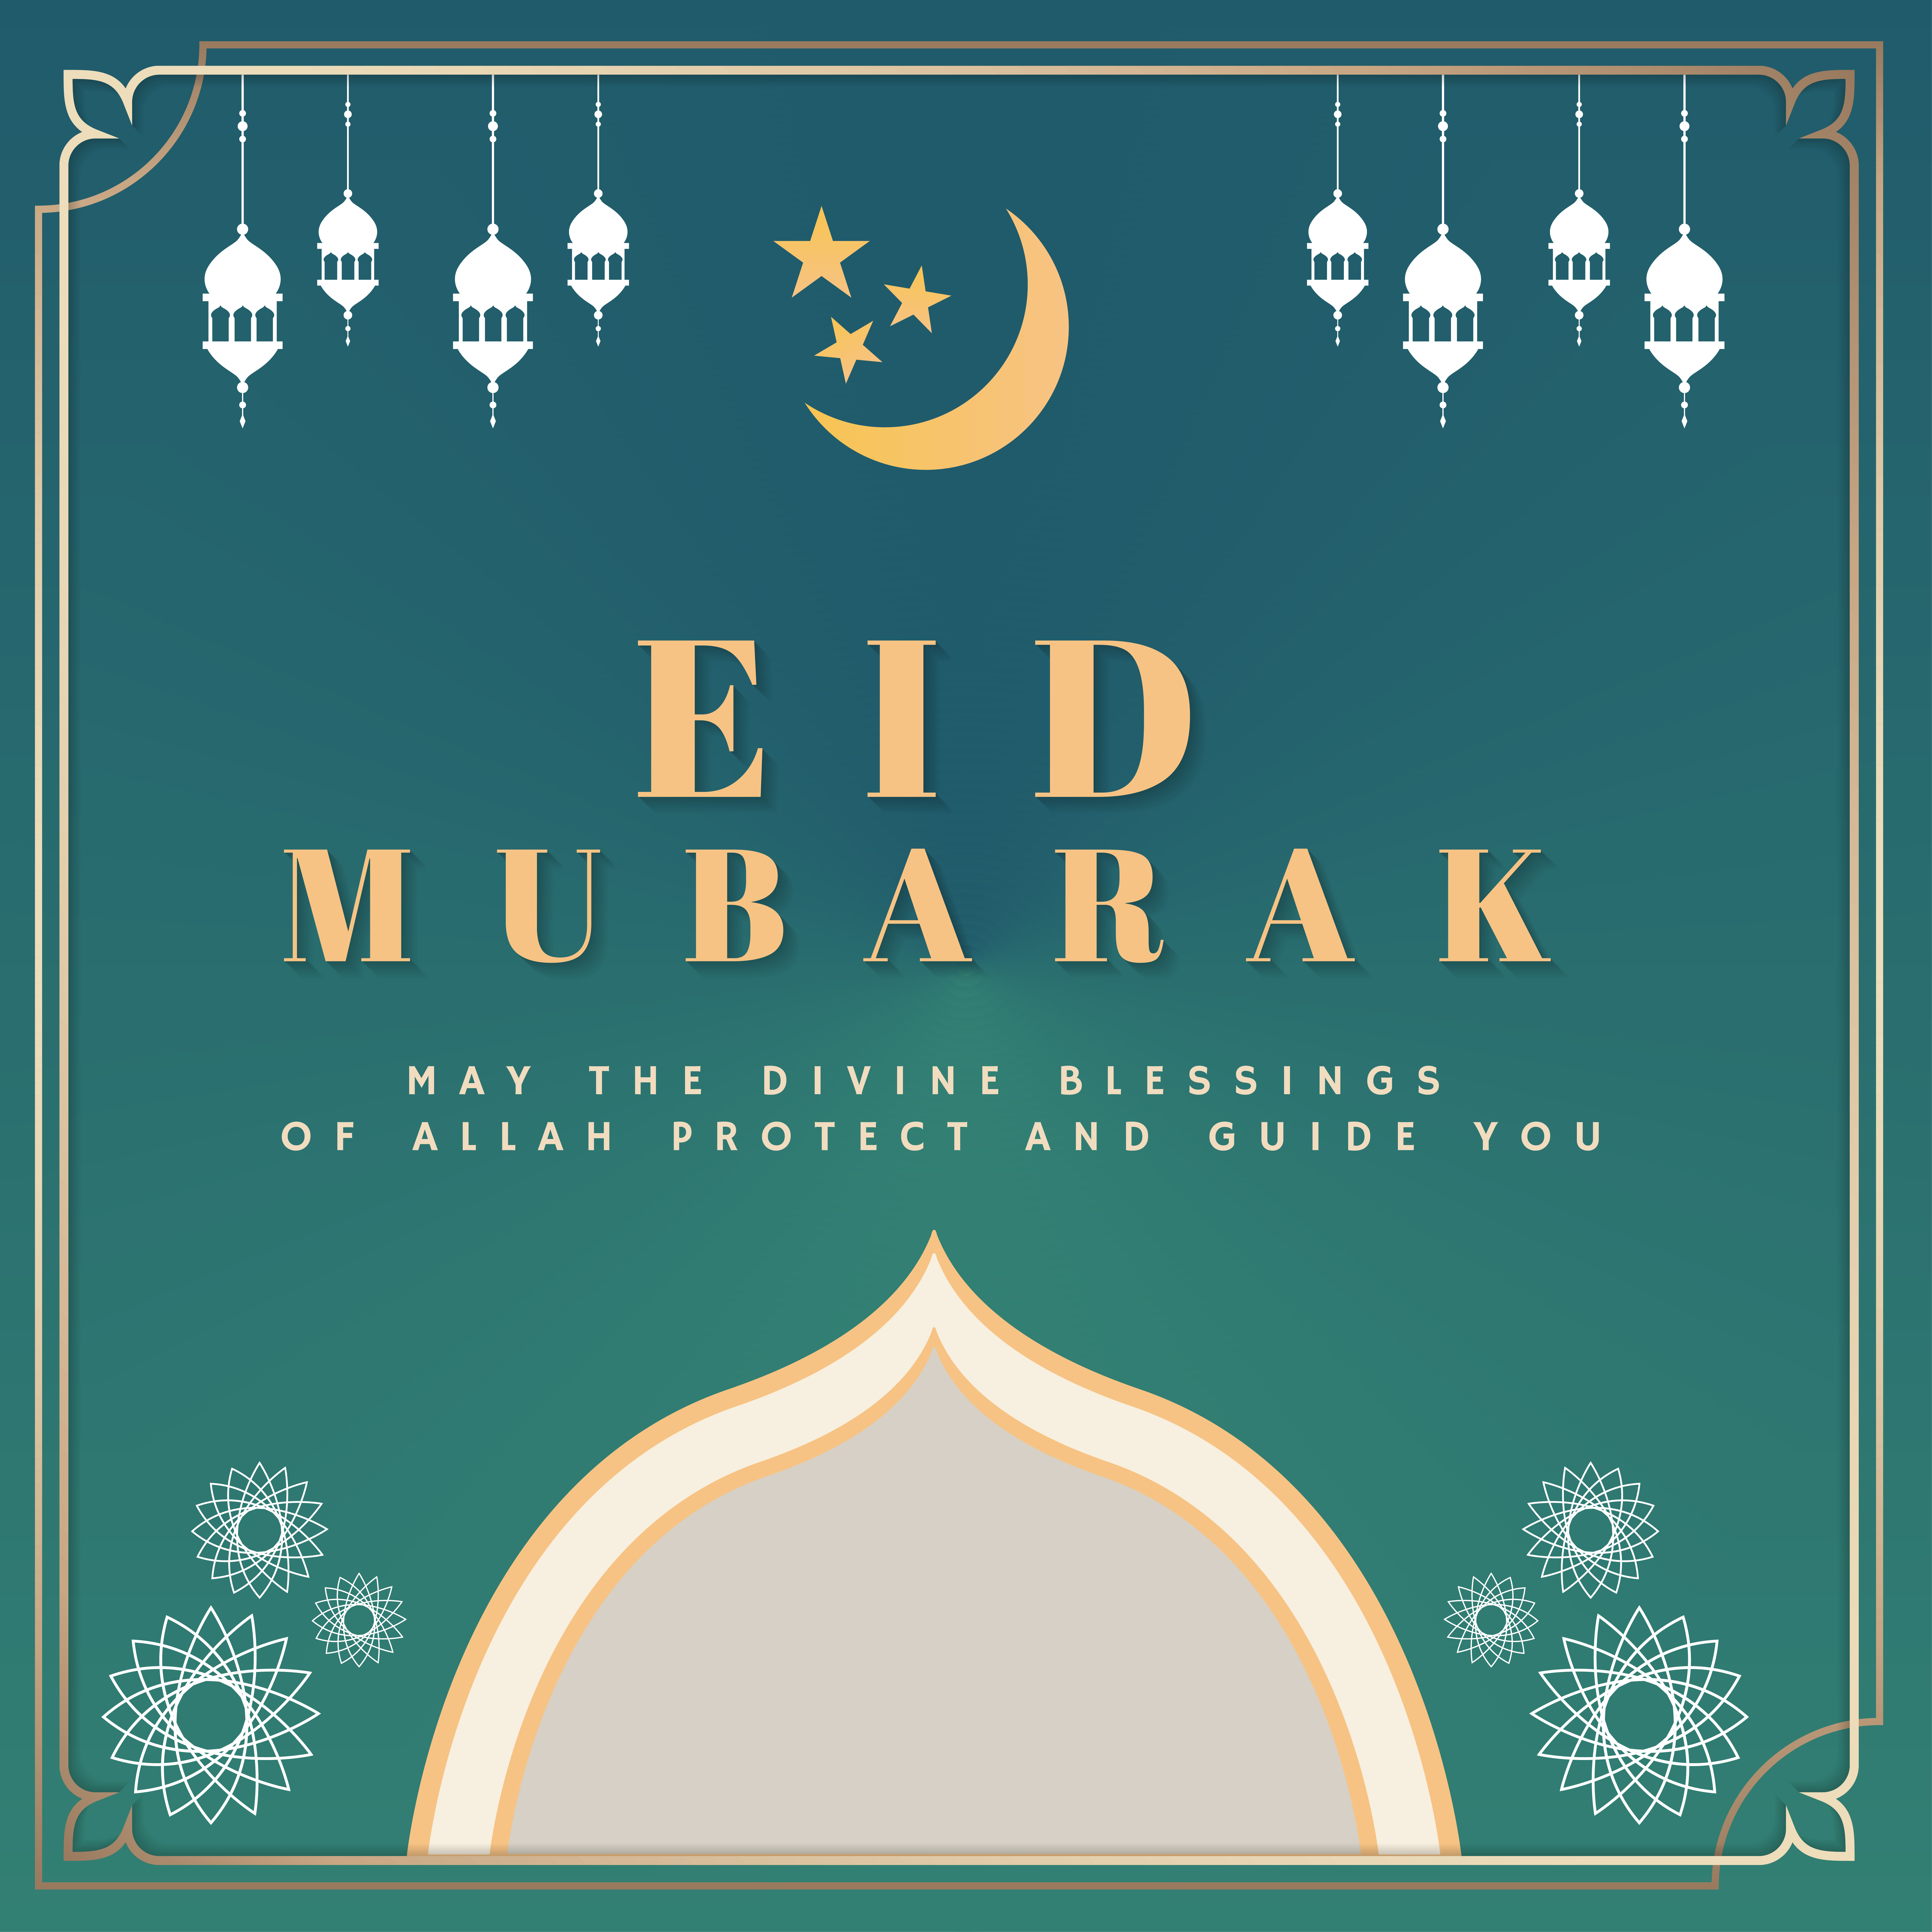 eid mubarak card with moon and lanterns  download free